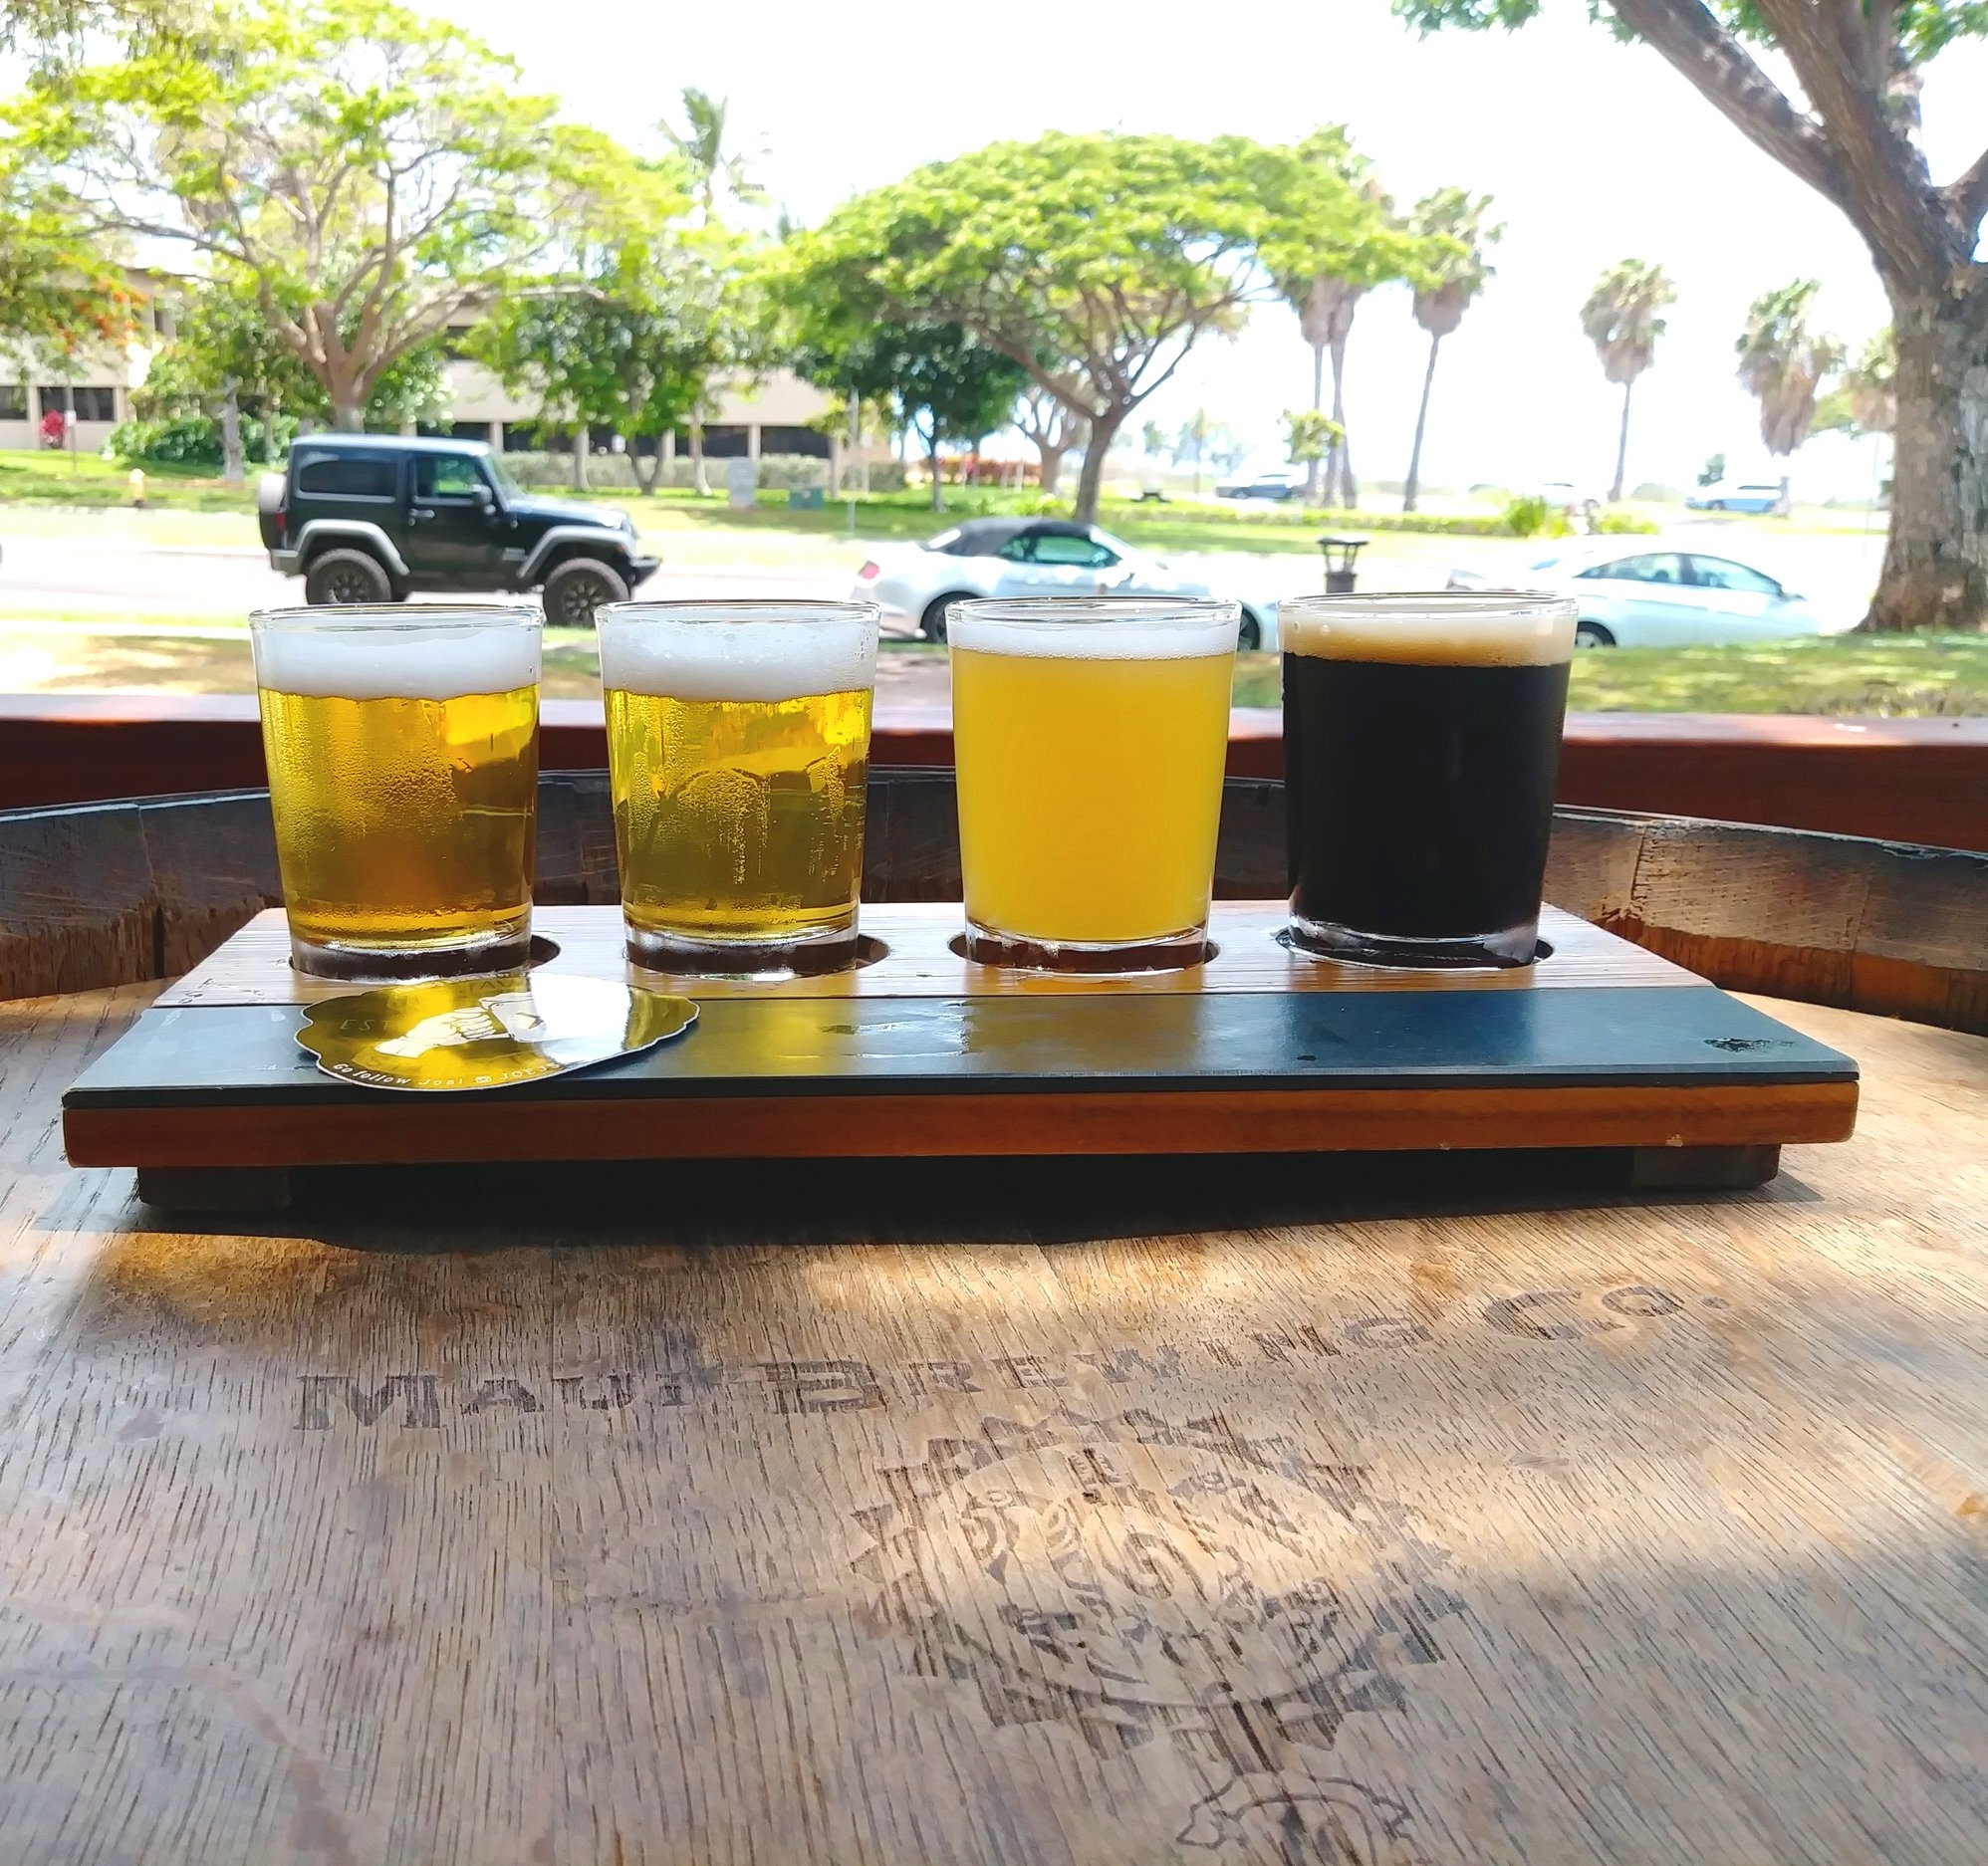 Always like having a flight when getting to go to a new brewery